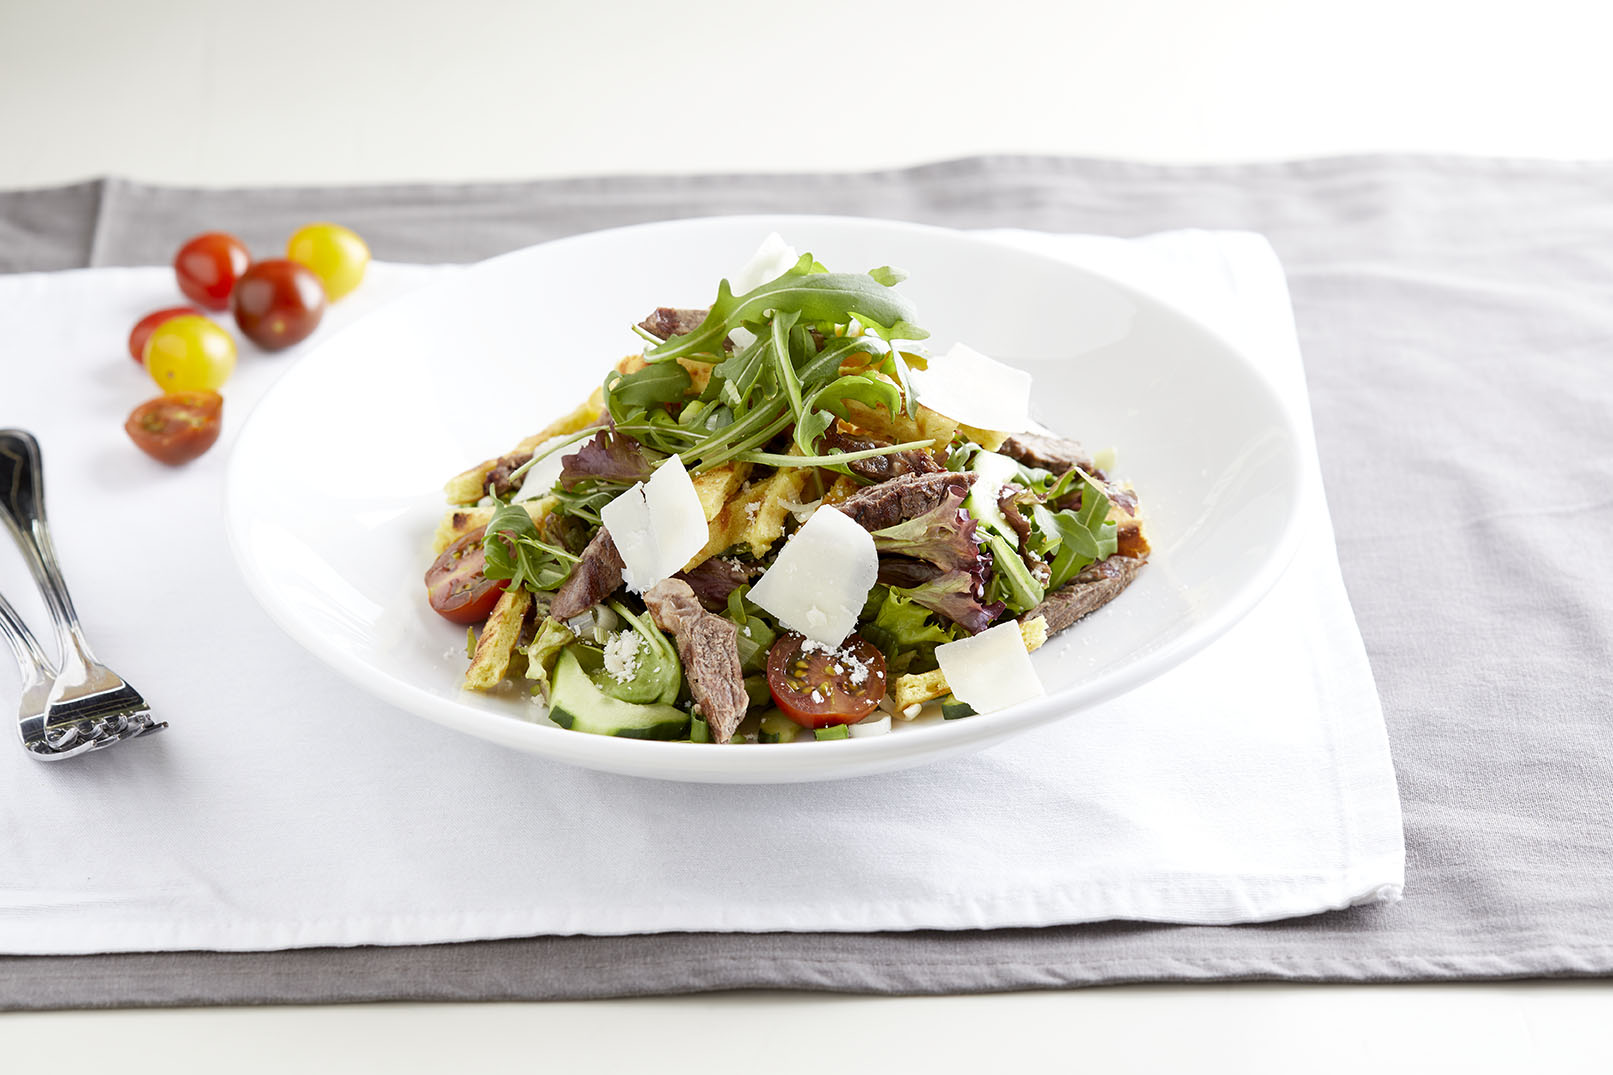 Sirloin Beef Mixed Salad